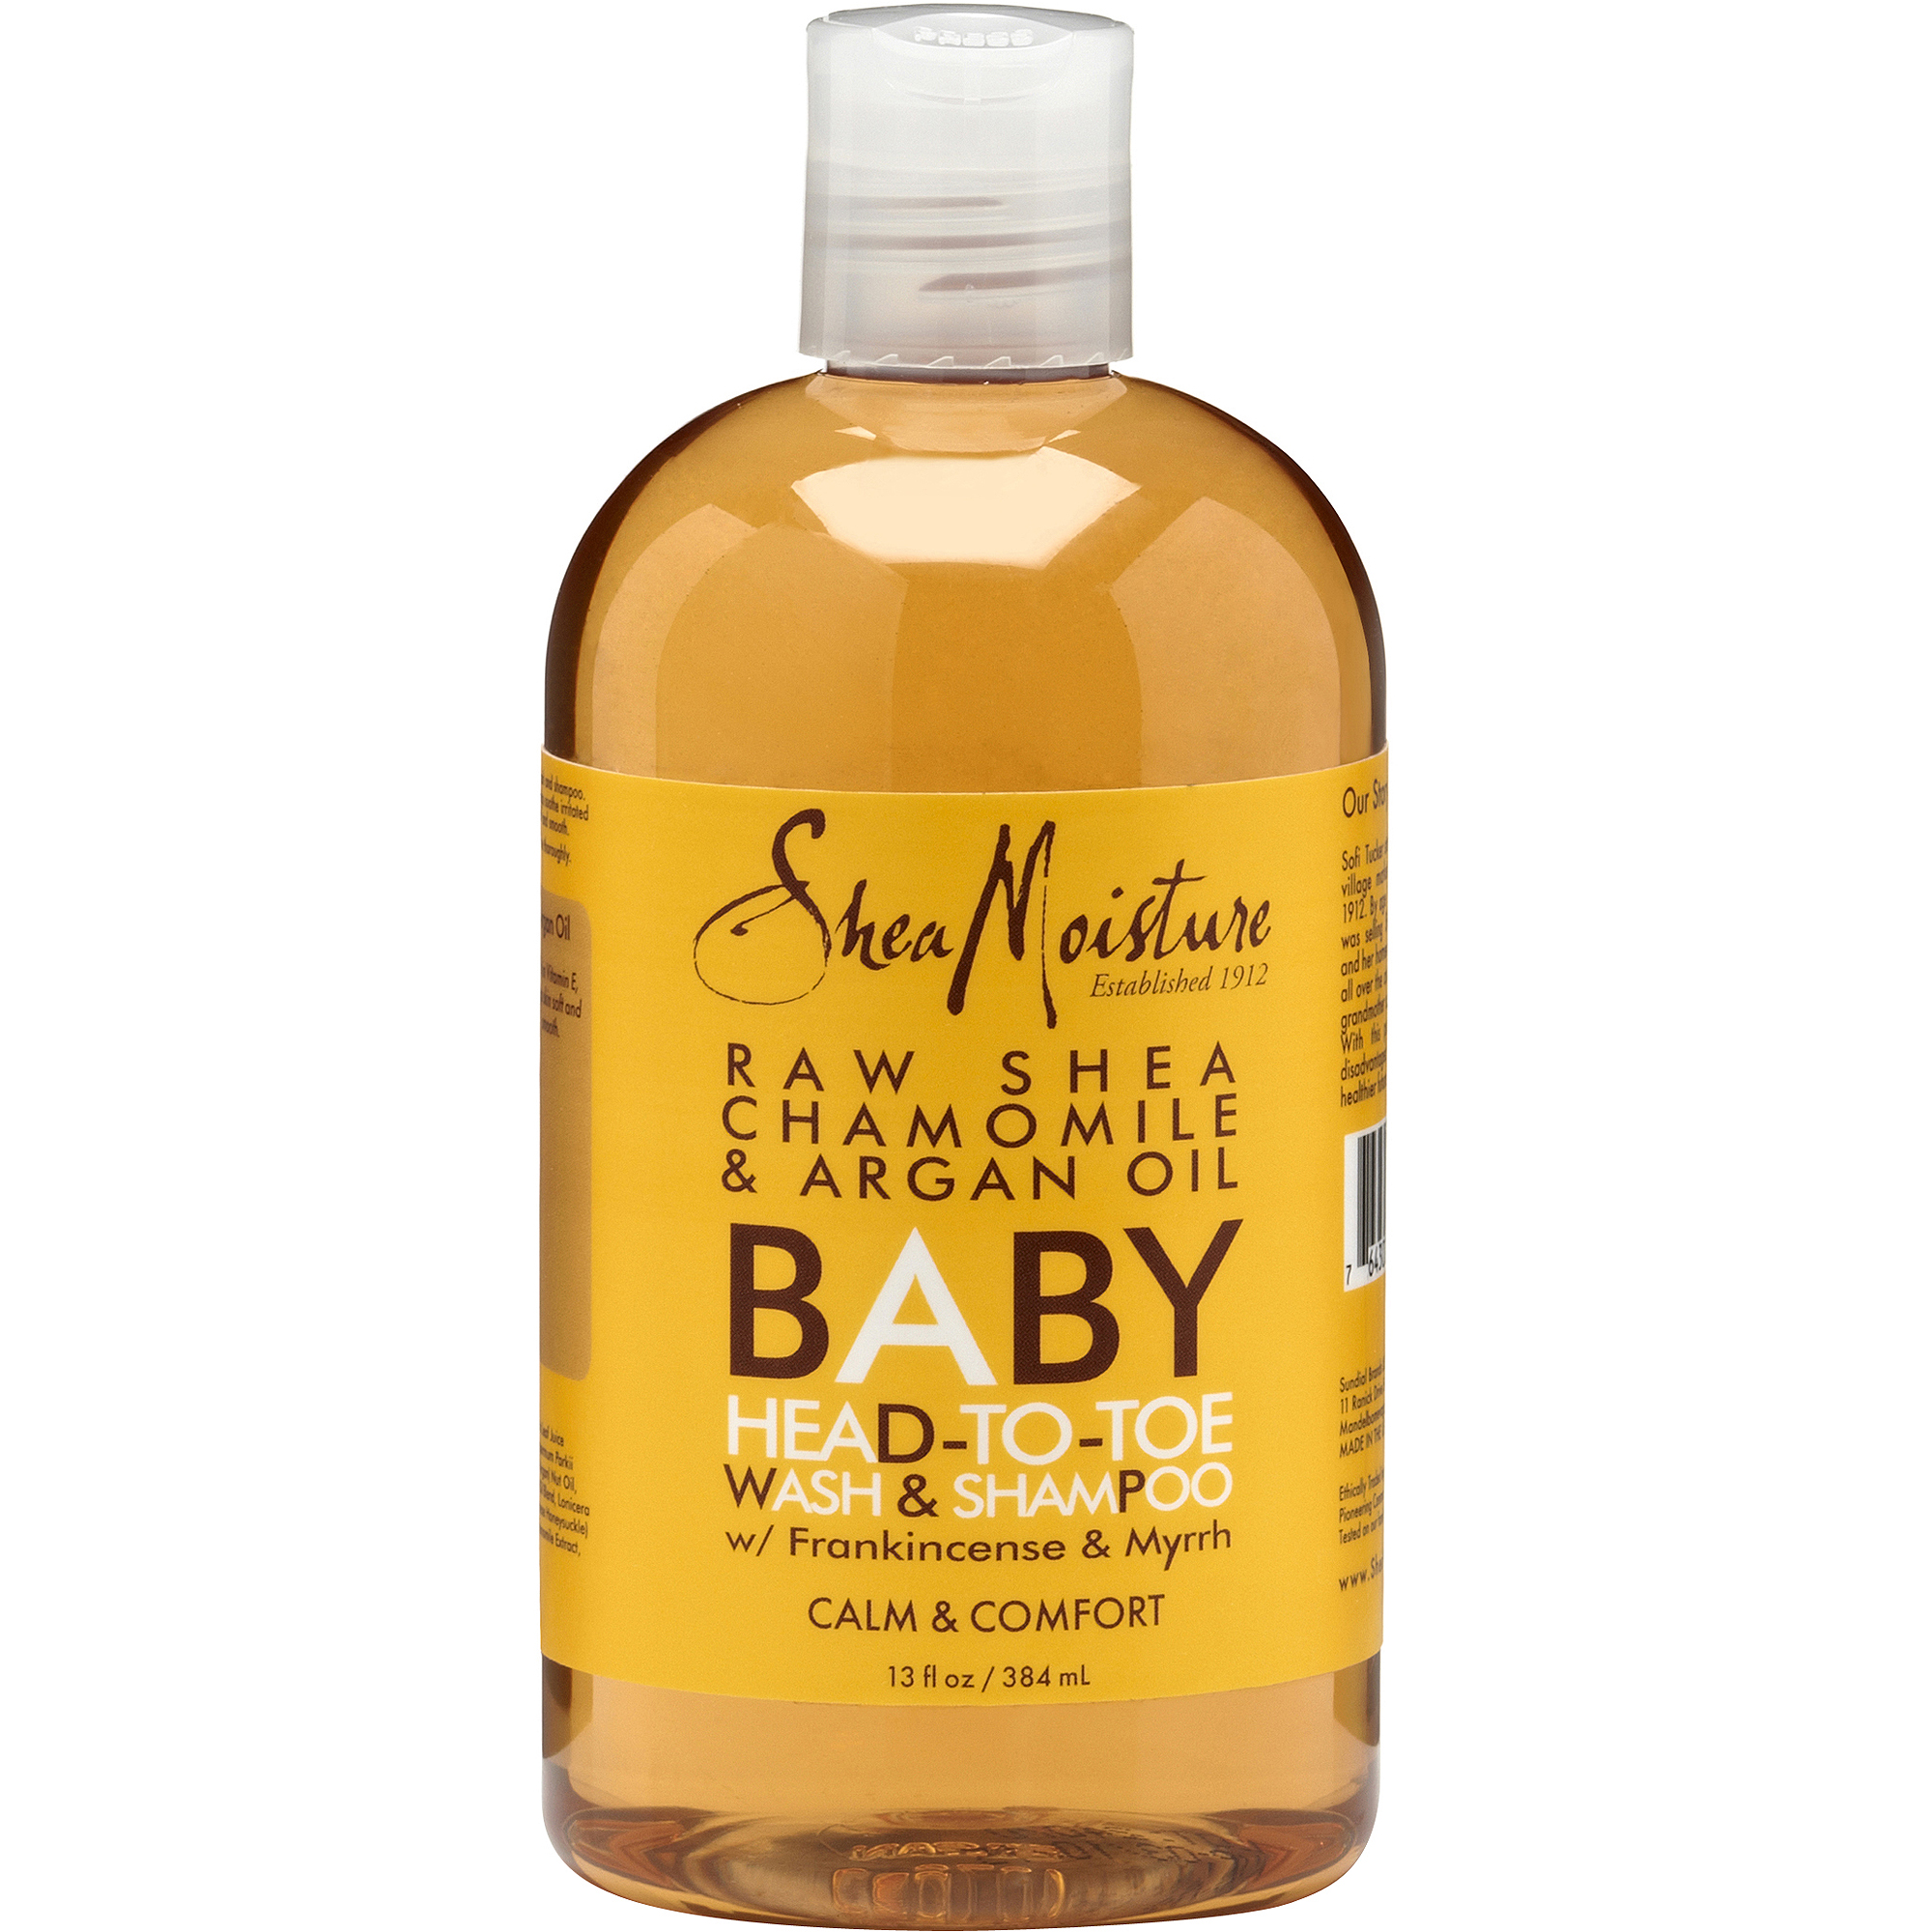 SheaMoisture Raw Shea Chamomile & Argan Oil Baby Wash & Shampoo, 13 fl oz